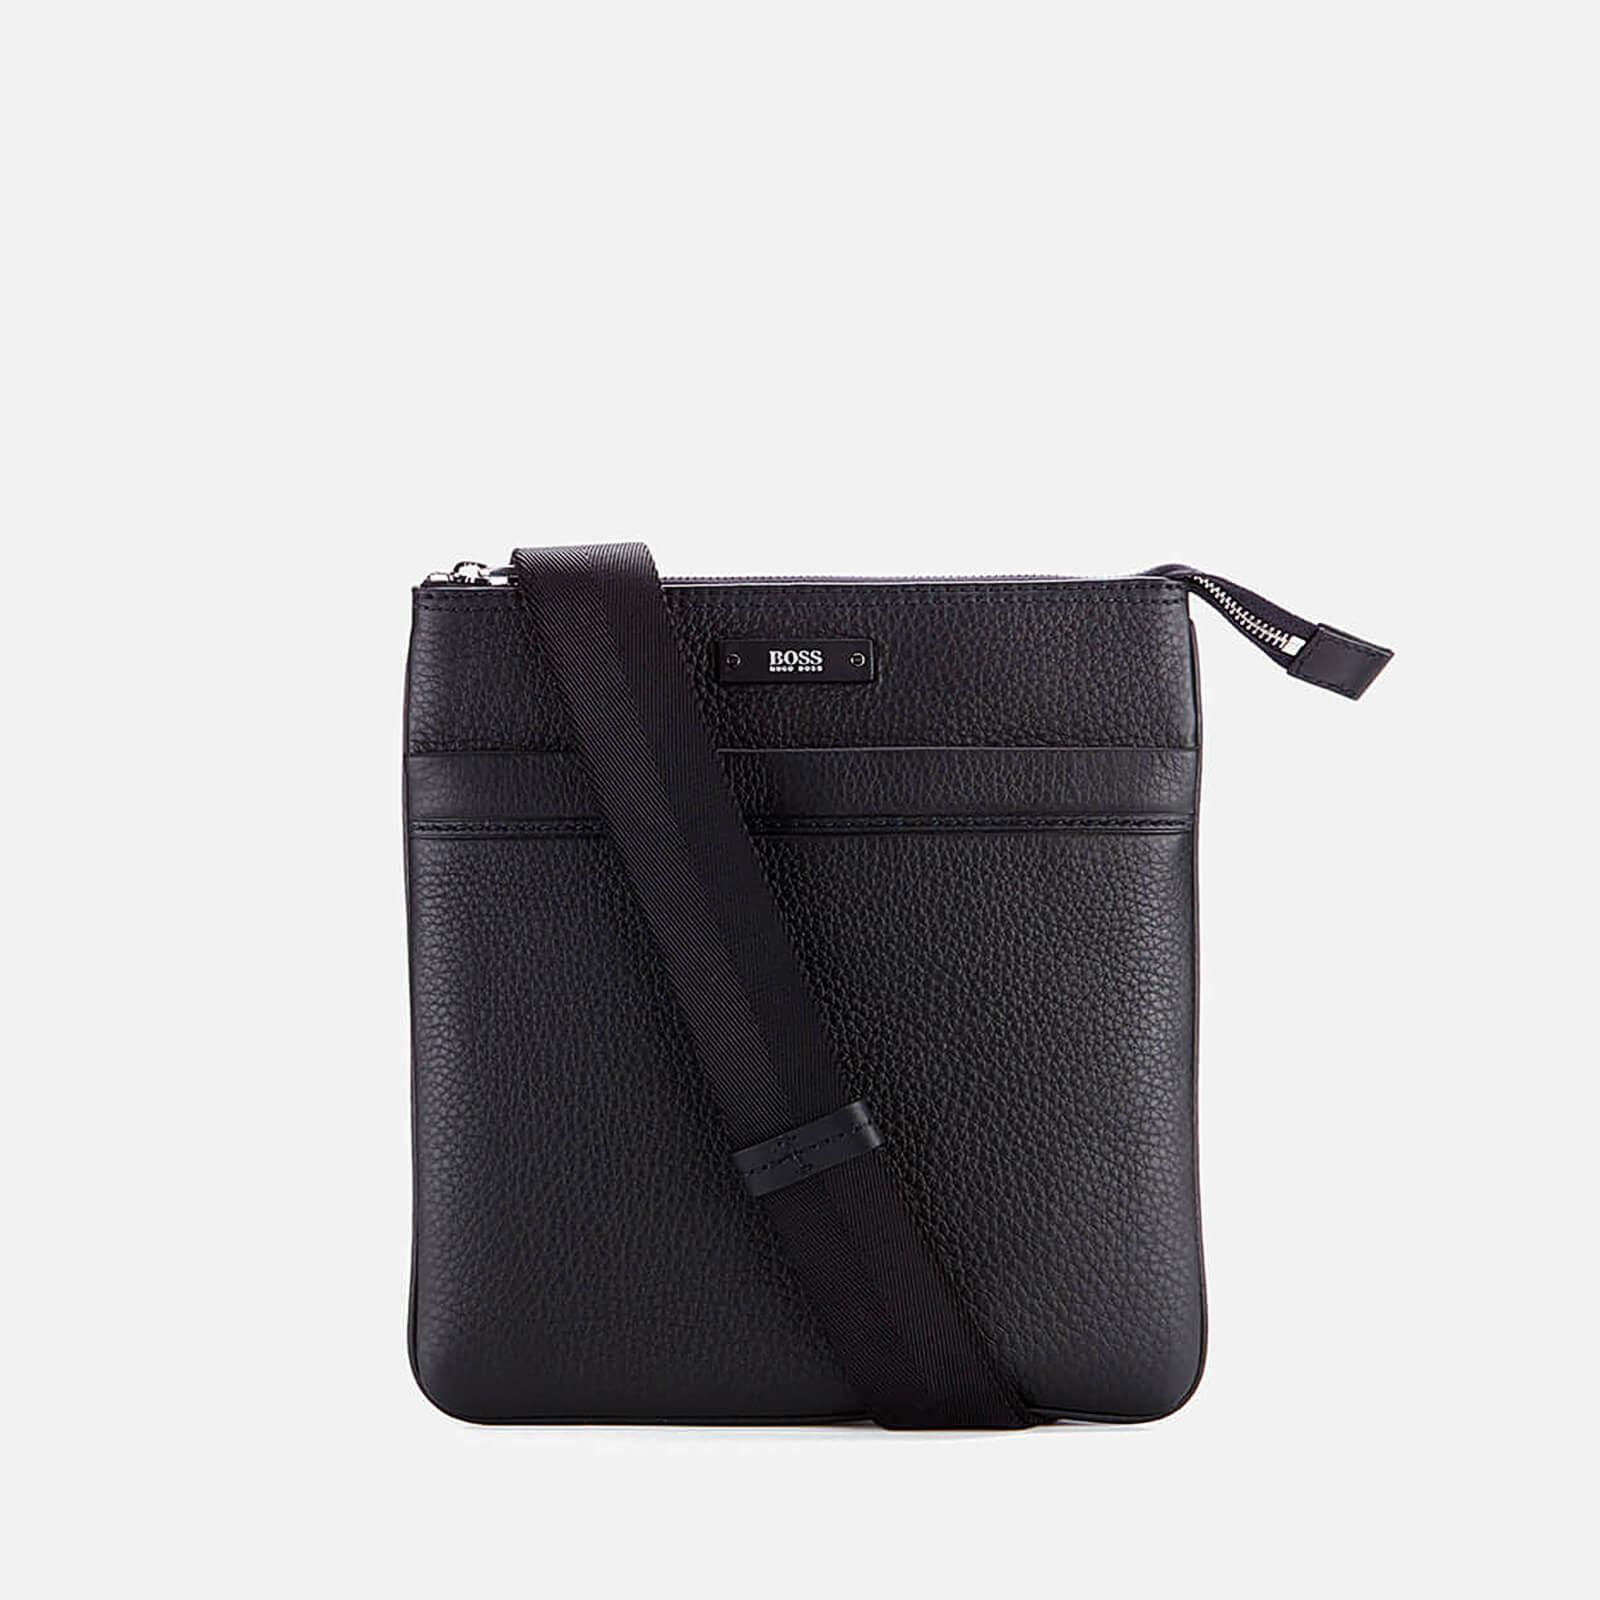 960ef449fc BOSS - Black Traveller Zip Cross Body Bag for Men - Lyst. View fullscreen